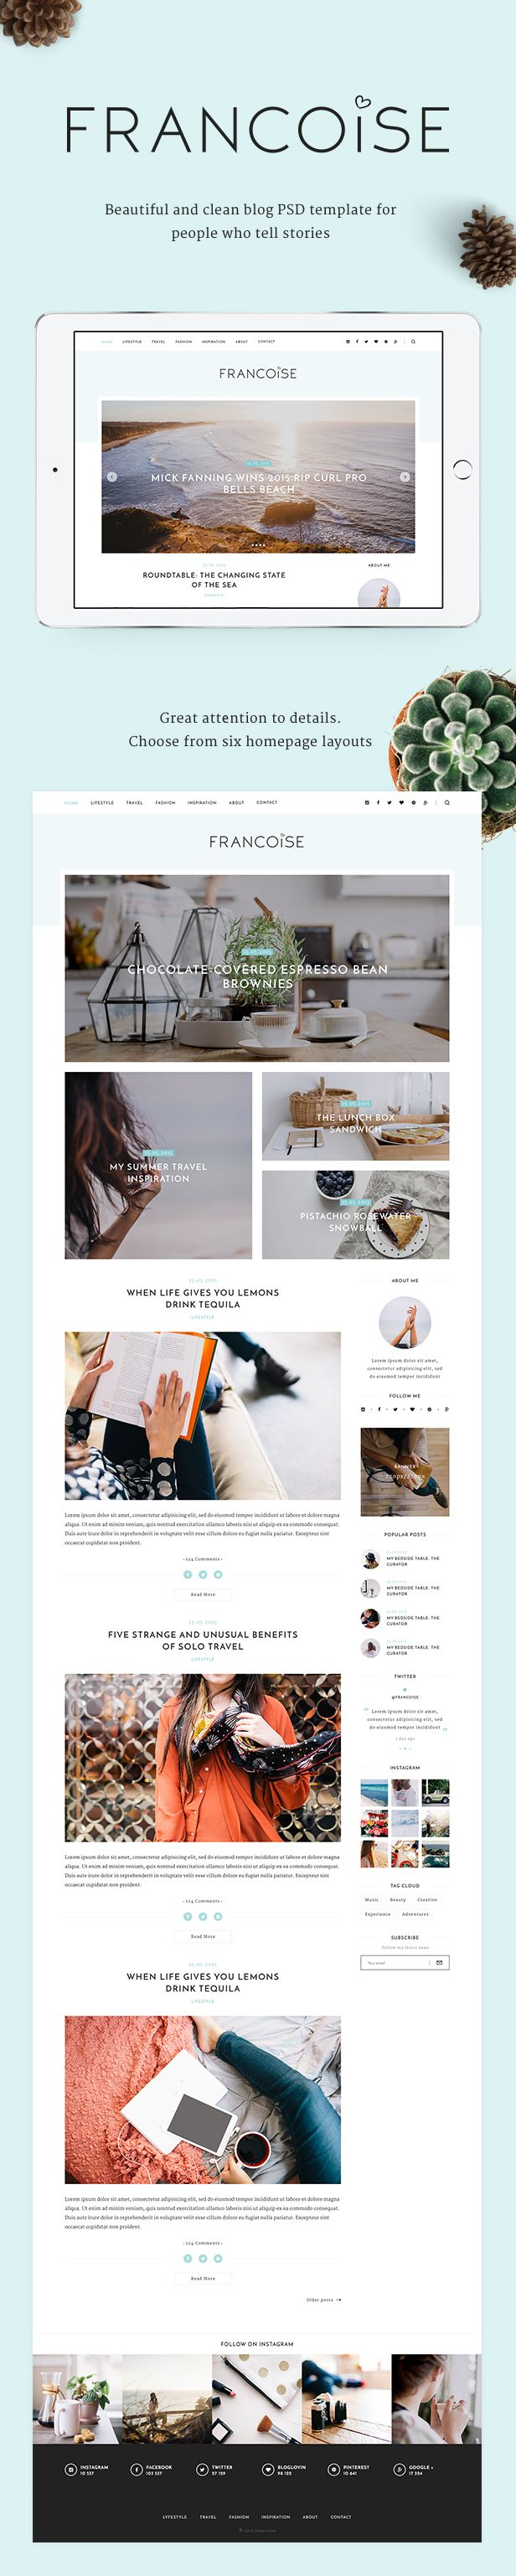 Francoise - Blog PSD Template | Psd templates, Template and Typo